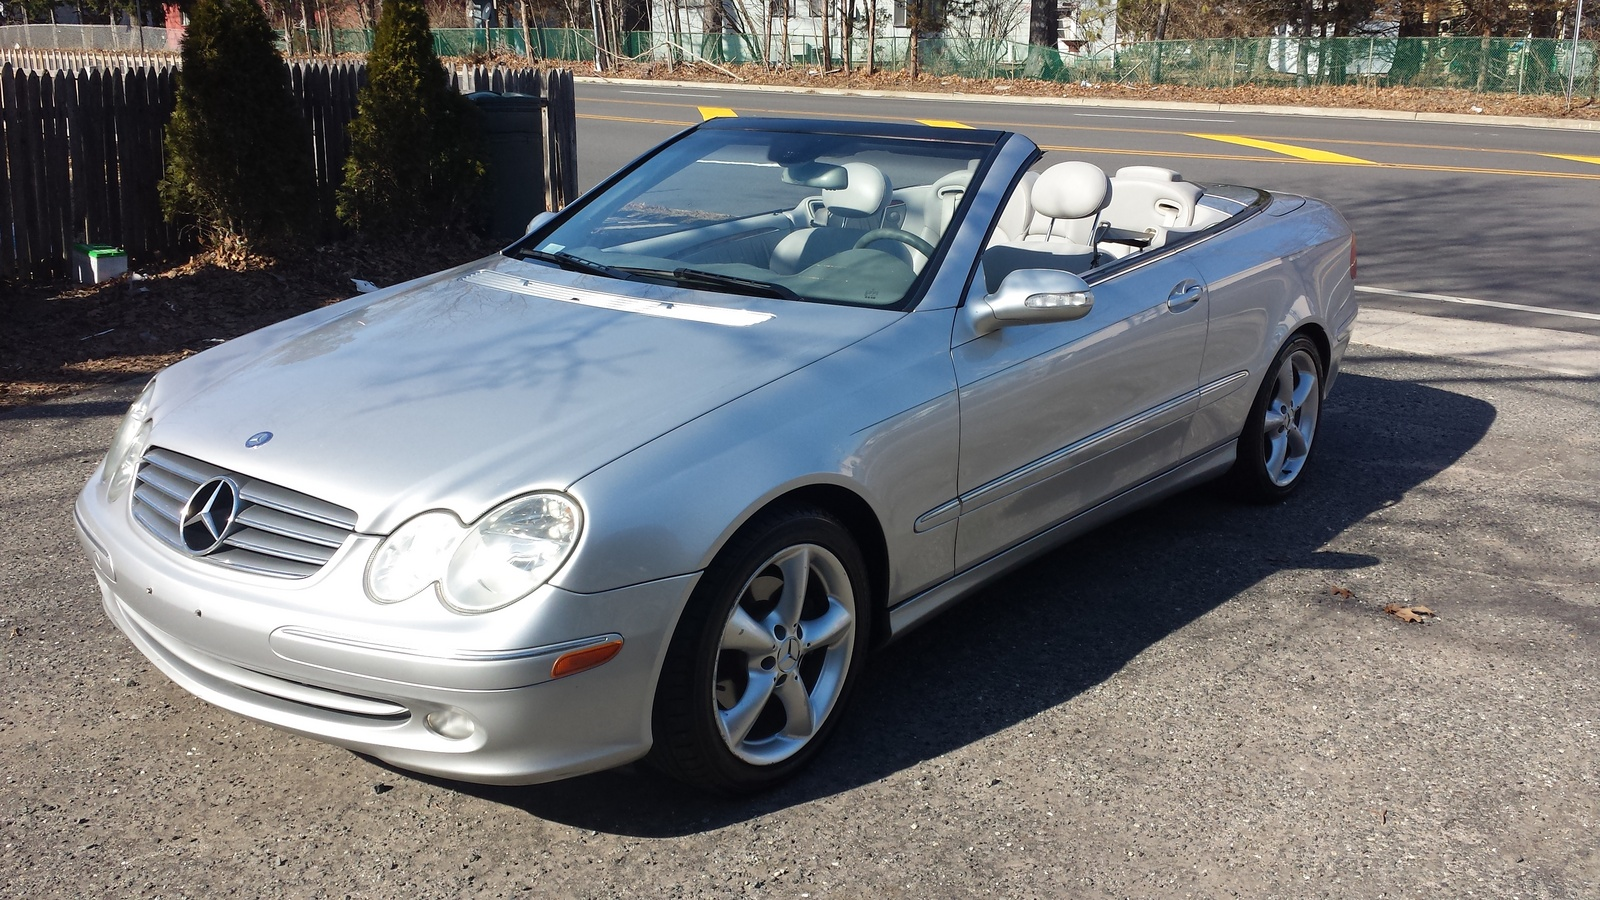 2005 mercedes benz clk class pictures cargurus for Mercedes benz clk 2005